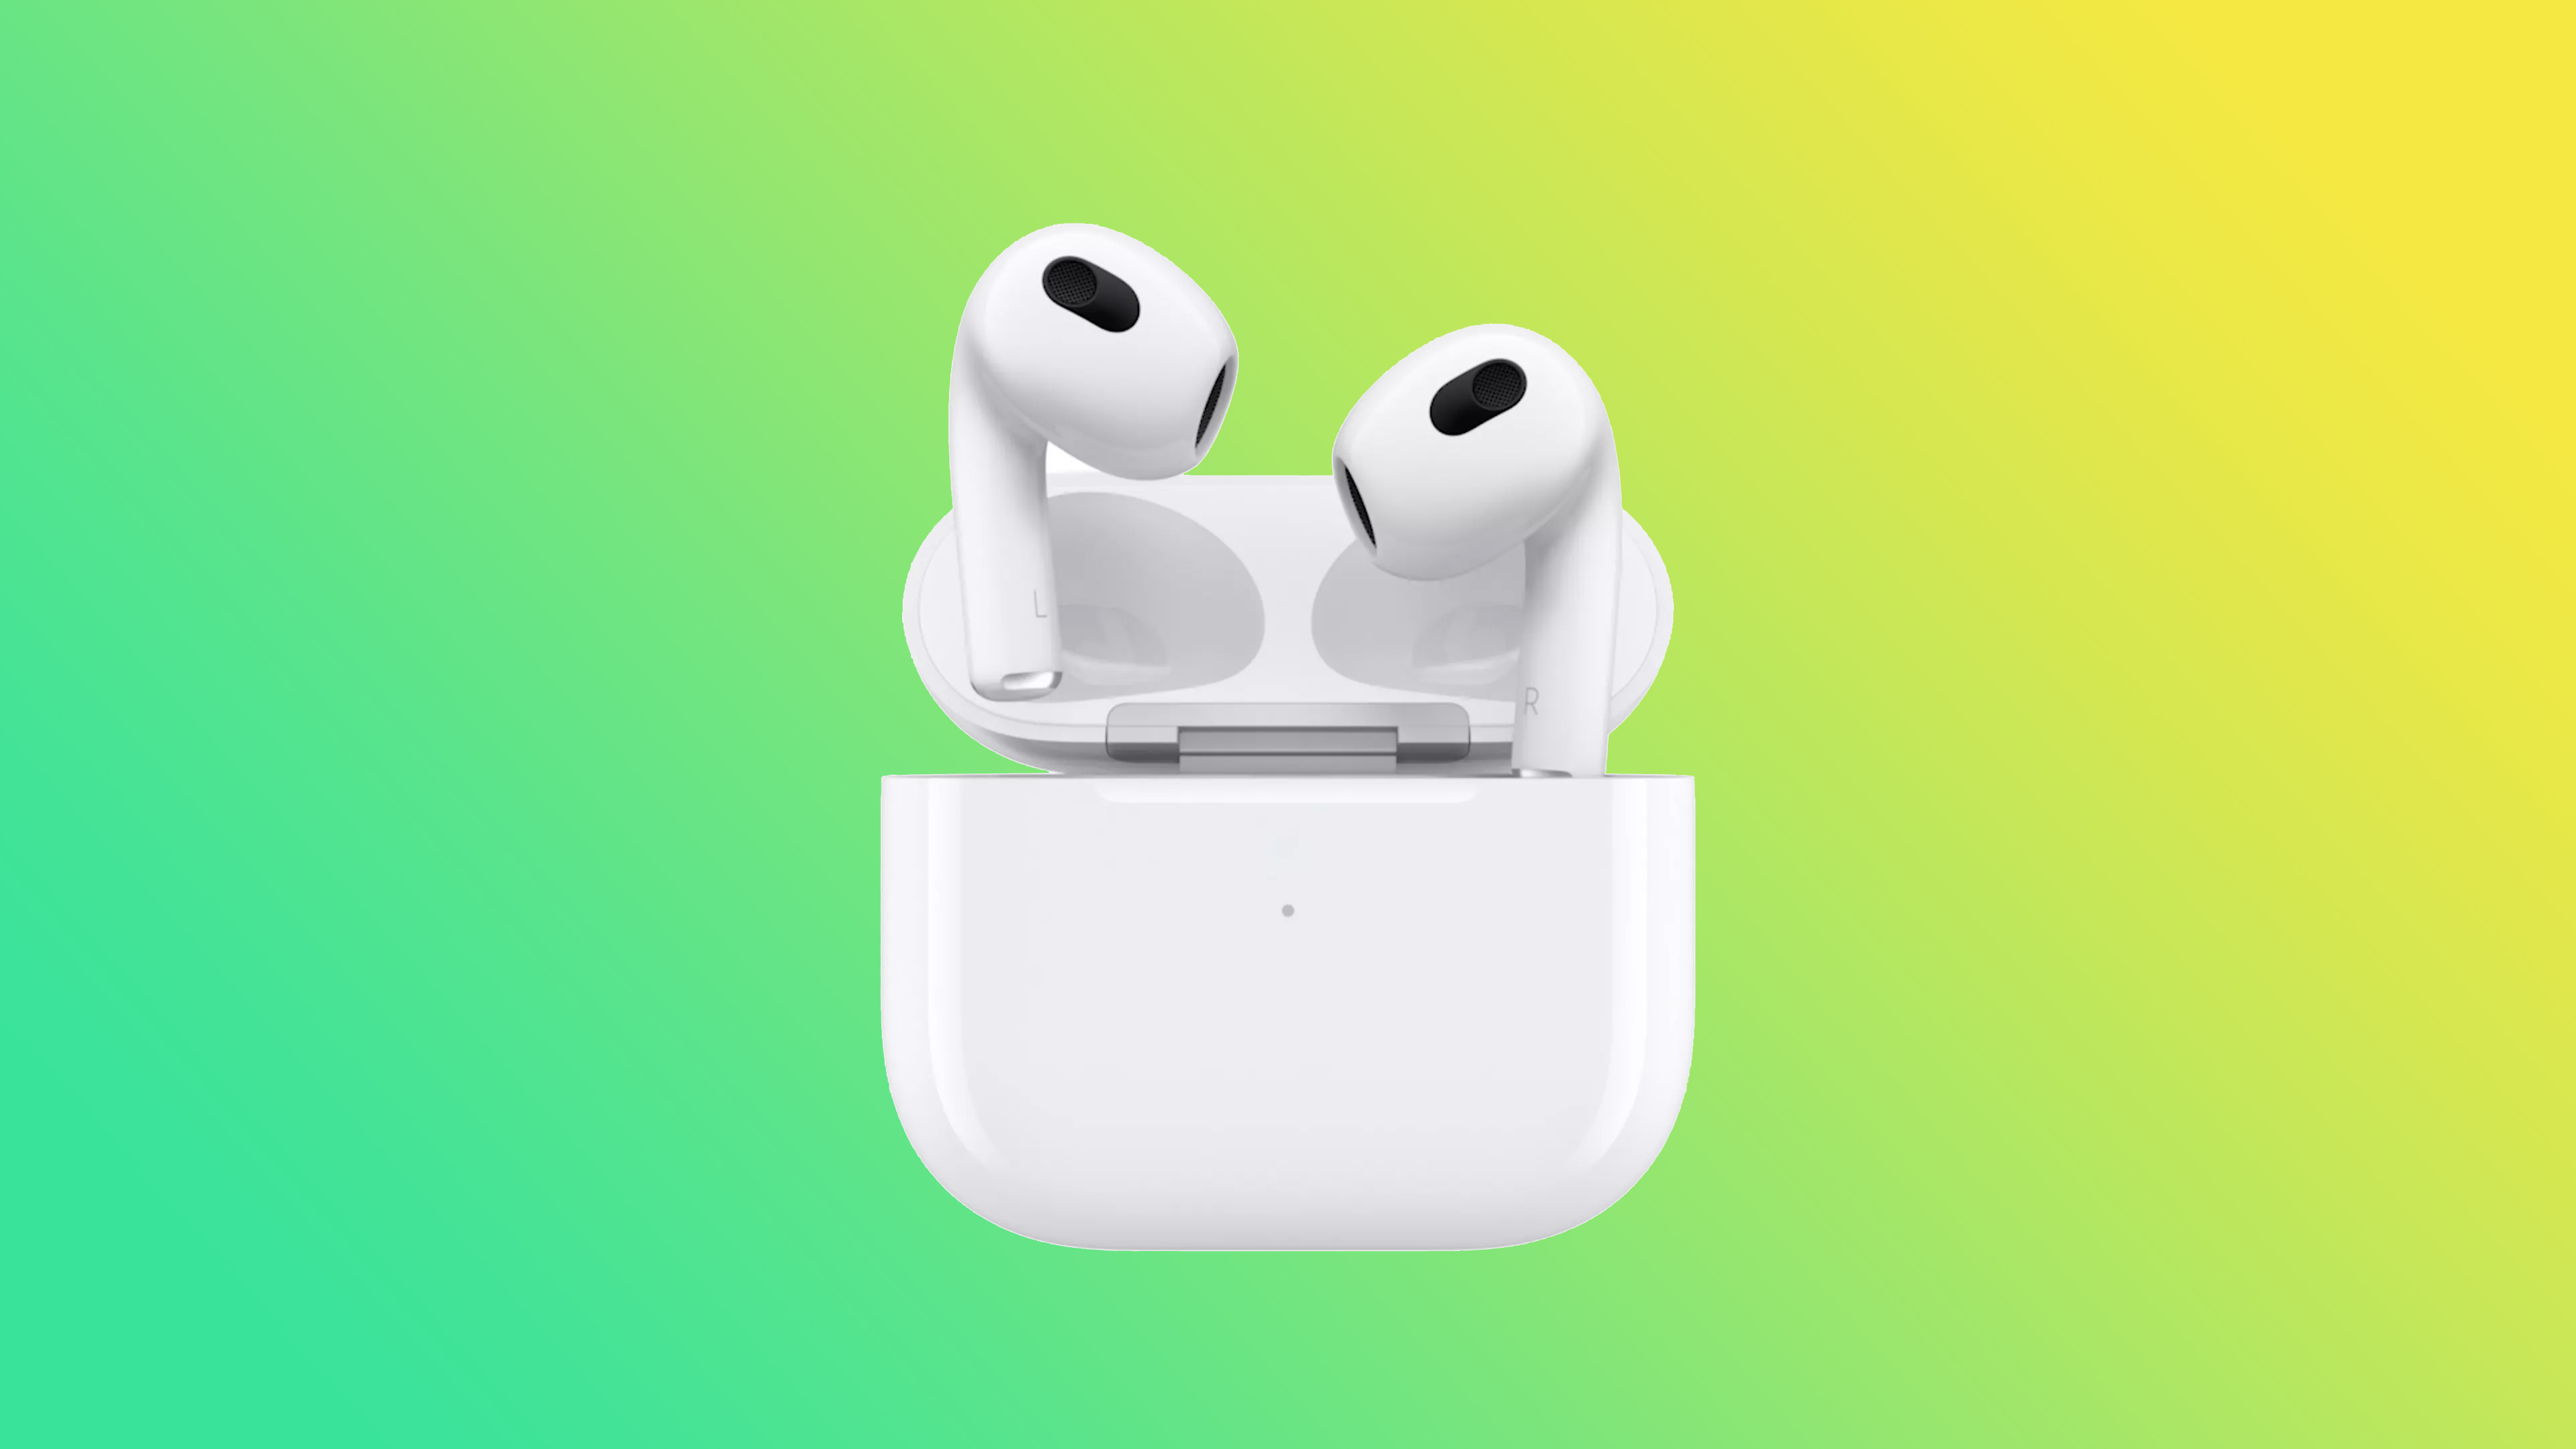 AirPods 3 make it easier to skip songs. Here's how to use the force sensor